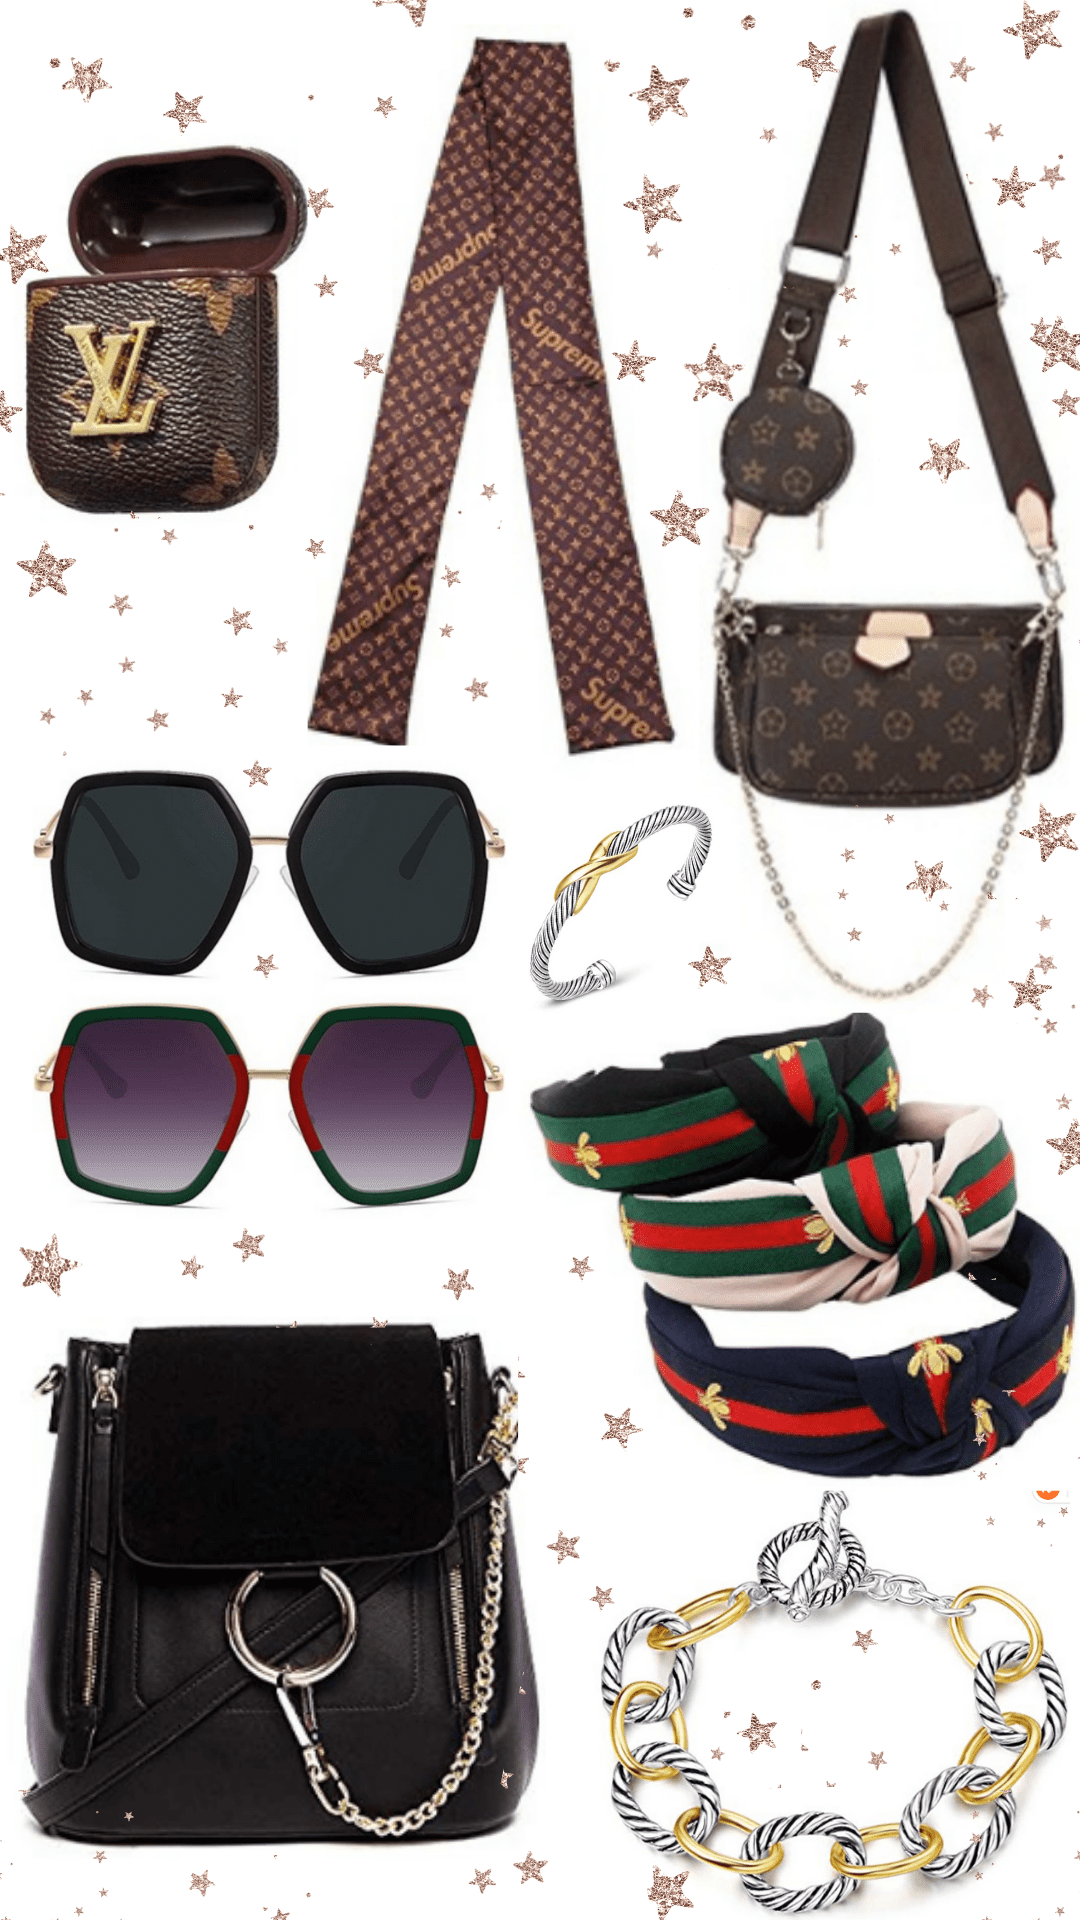 this image is filled with dupes from amazon prime. There is a Louis Vuitton inspired airpod case, gucci dupe sunglasses, gucci inspired headbands, a chloe dupe backpack, two david yurman dupe bracelets and a Louis Vuitton inspired bag and scarf.